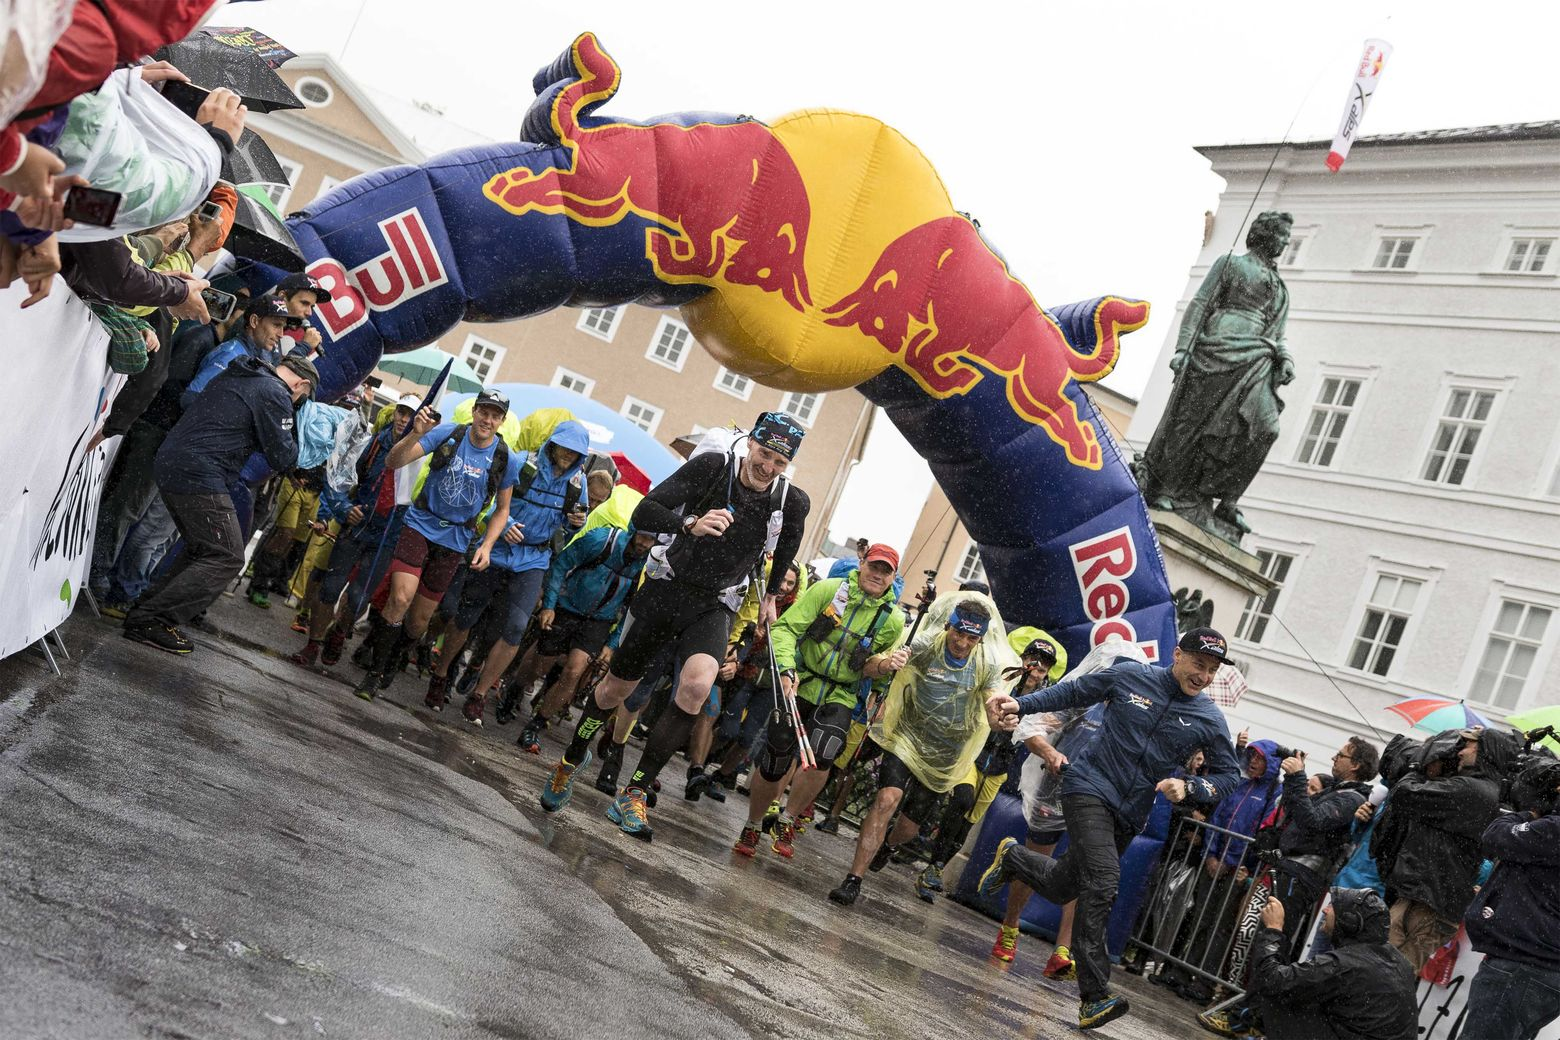 redbull xalps 2018 zooom